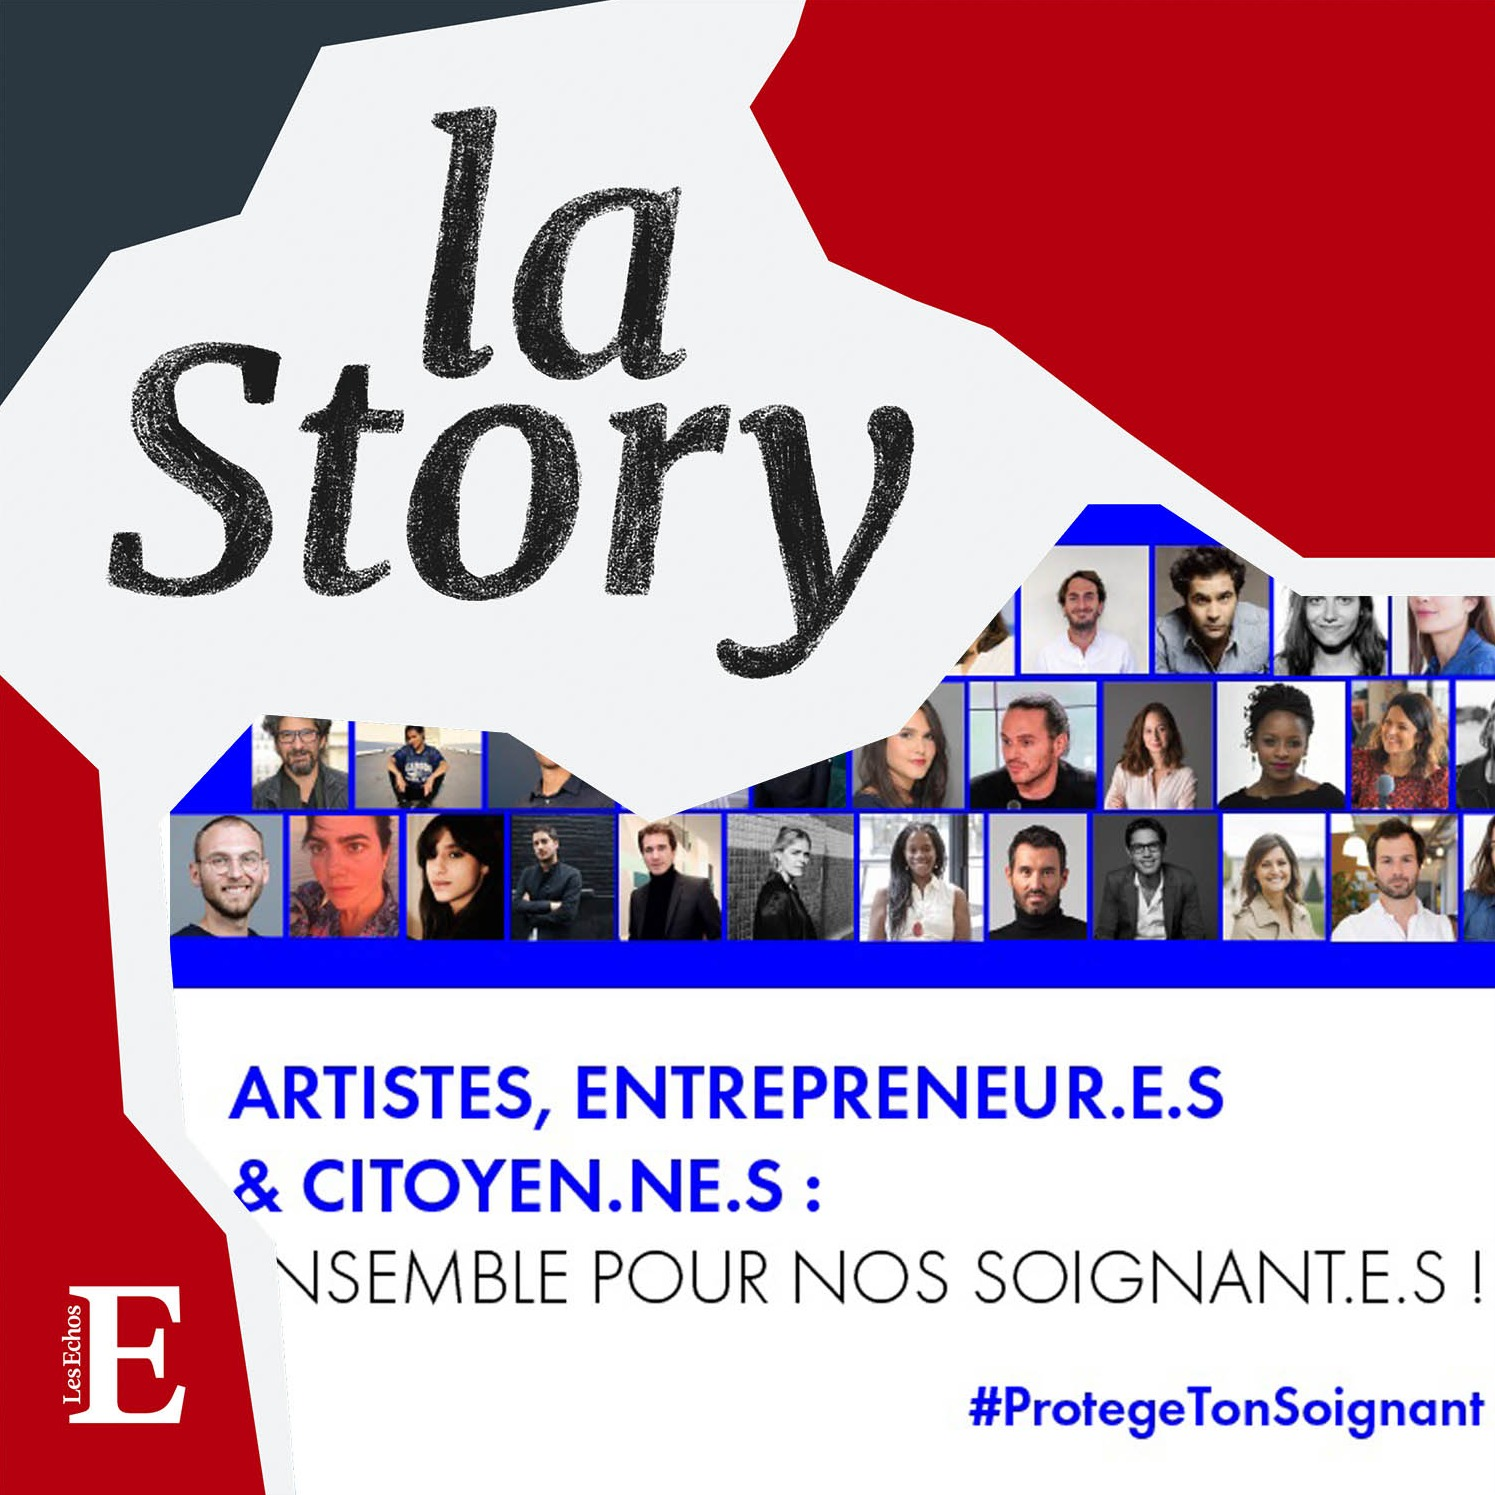 #ProtegeTonSoignant: la French Tech solidaire